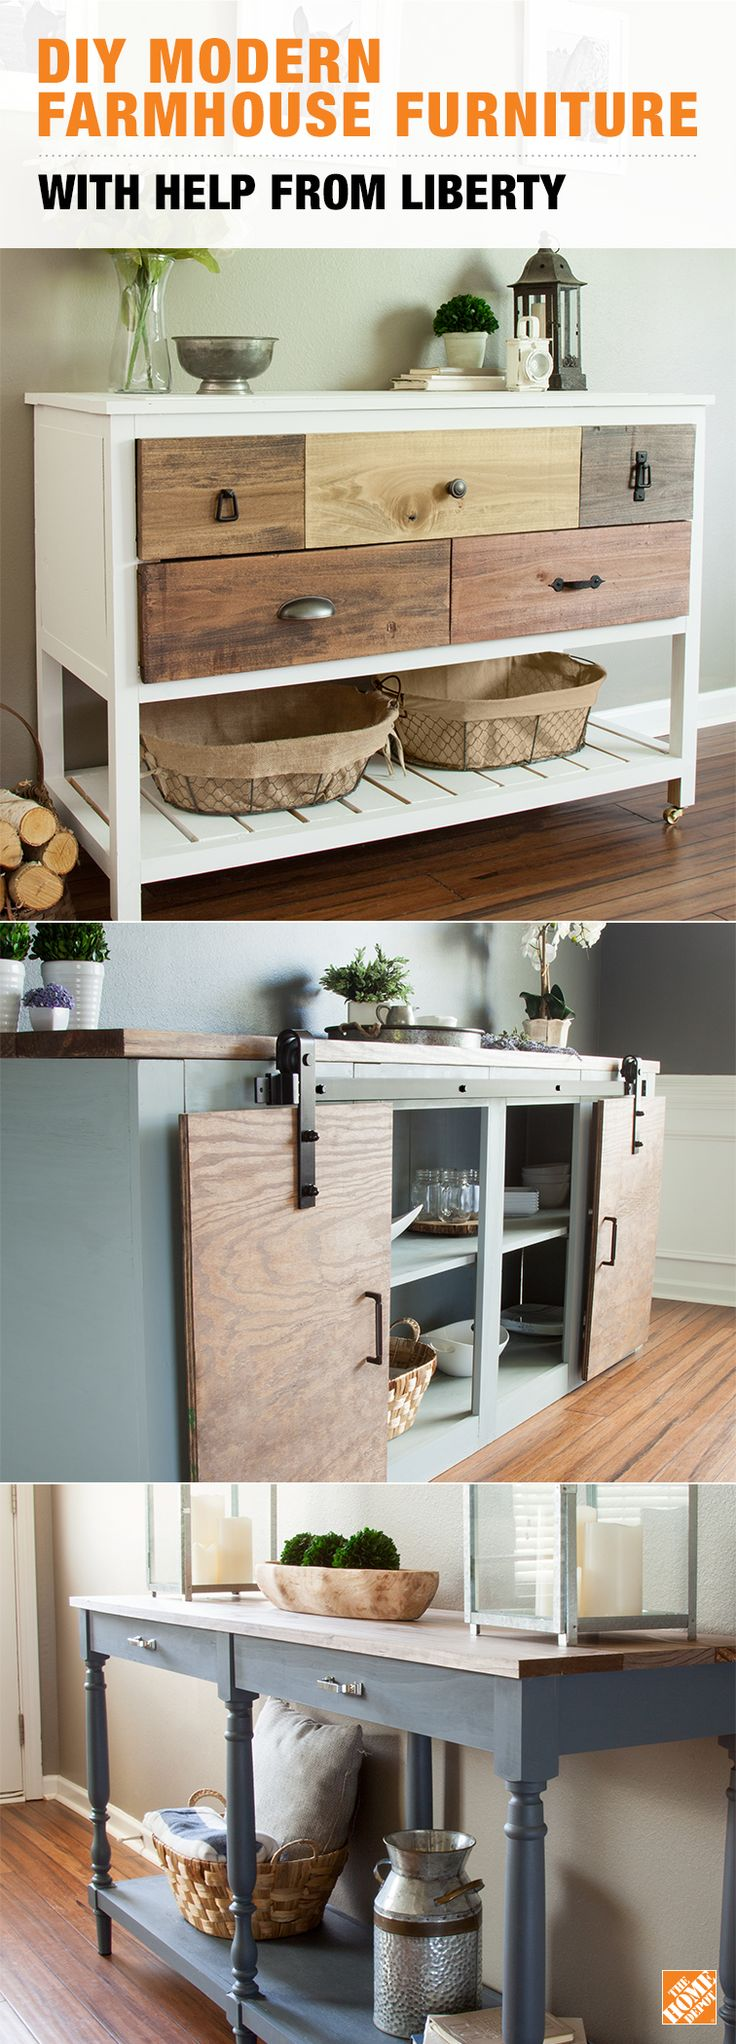 Add Comfort And Character To Any Room With Your Own DIY Modern Farmhouse  Furniture. All